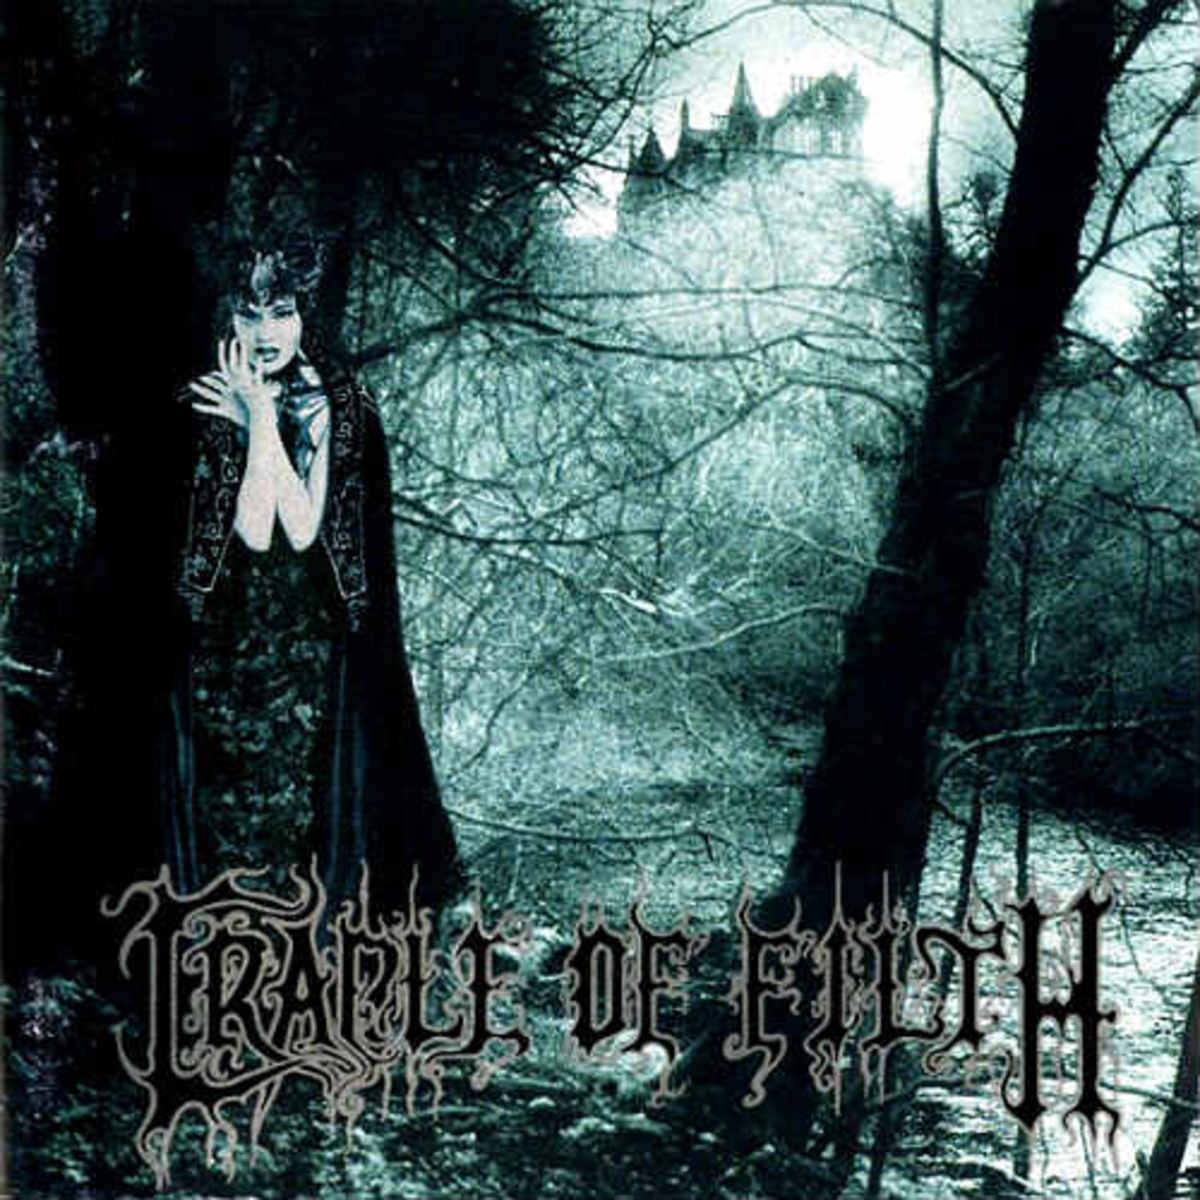 Review: the album called Dusk and Her Embrace By Symphonic Black Metal Band Cradle of Filth